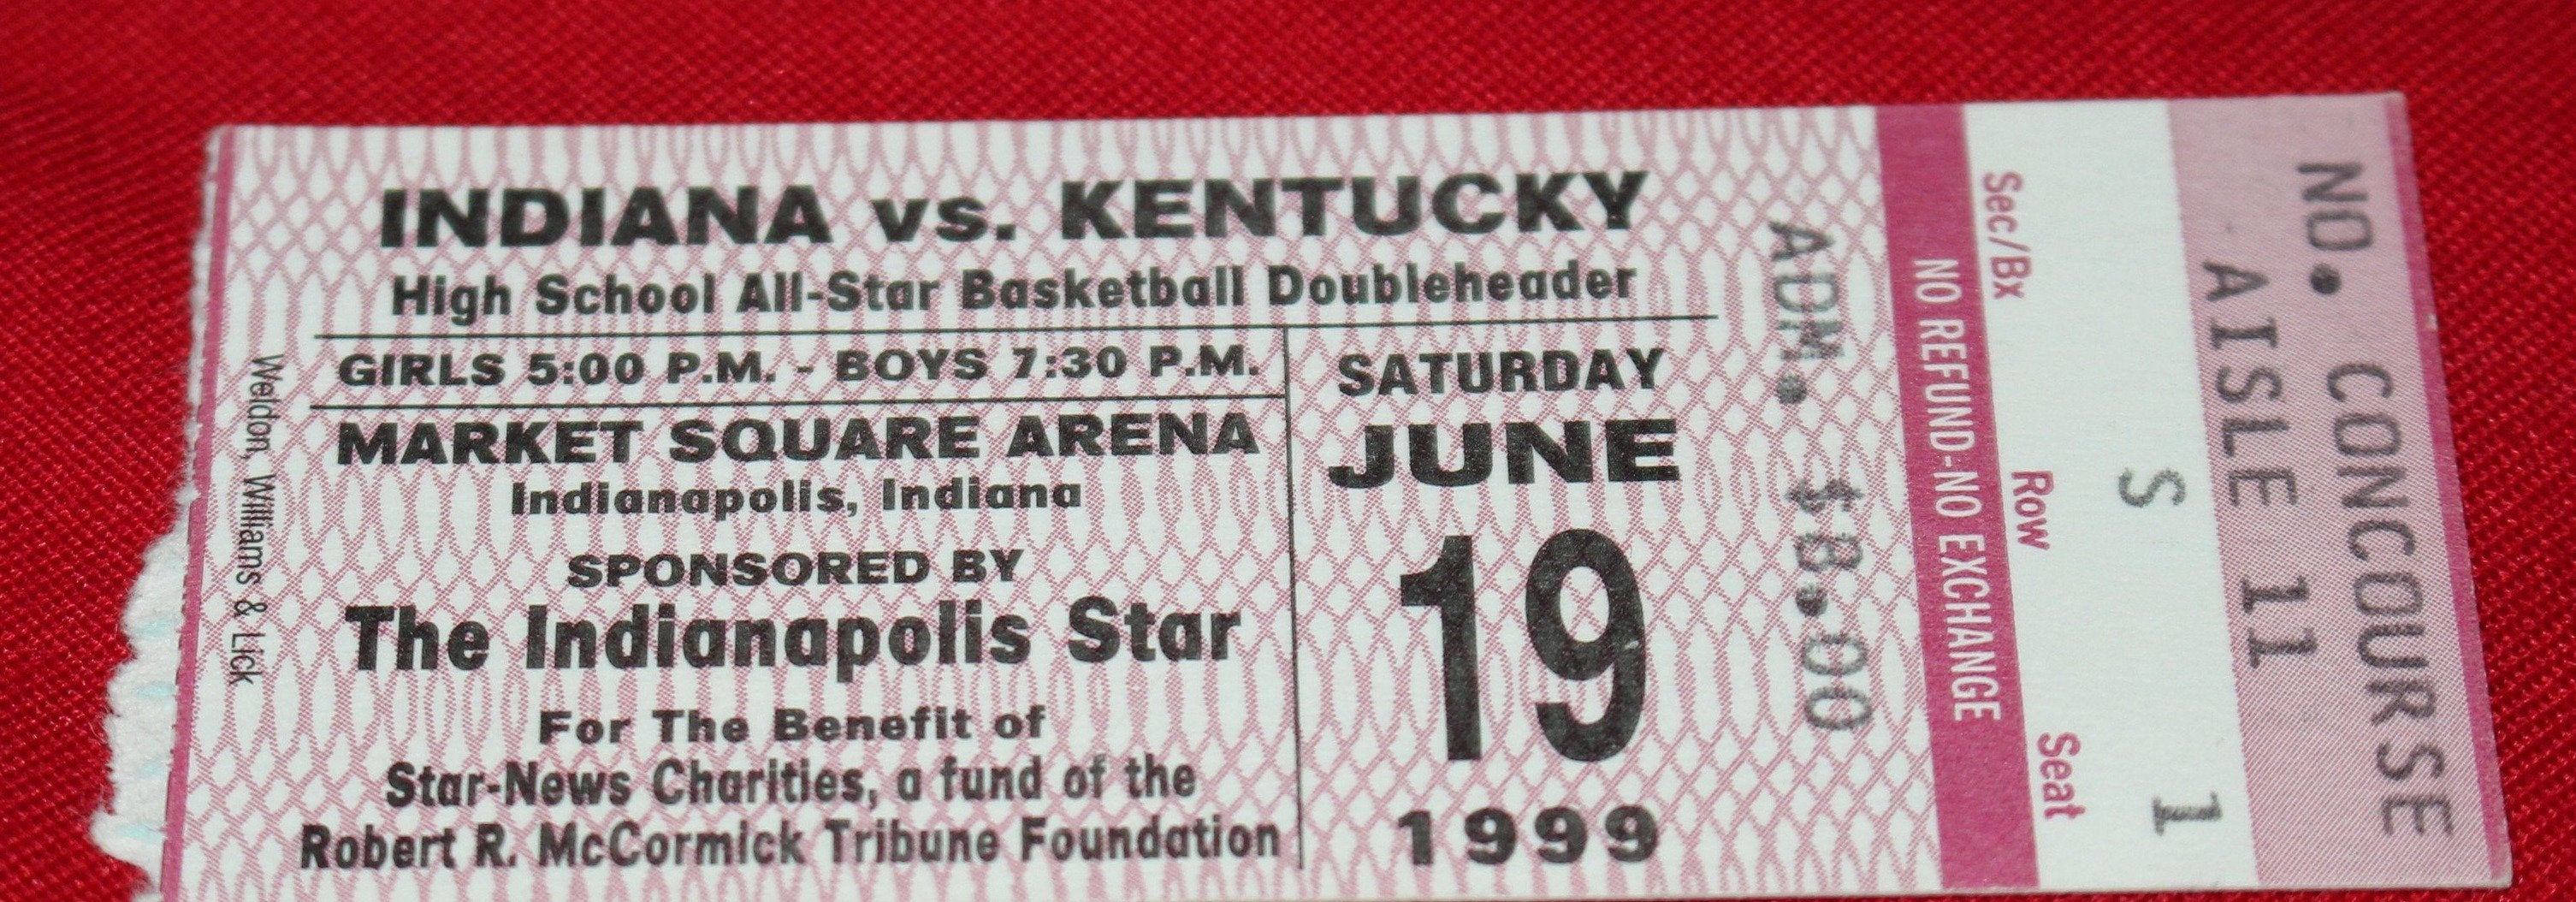 1999 Indiana vs Kentucky High School Basketball All Star Game Ticket Stub